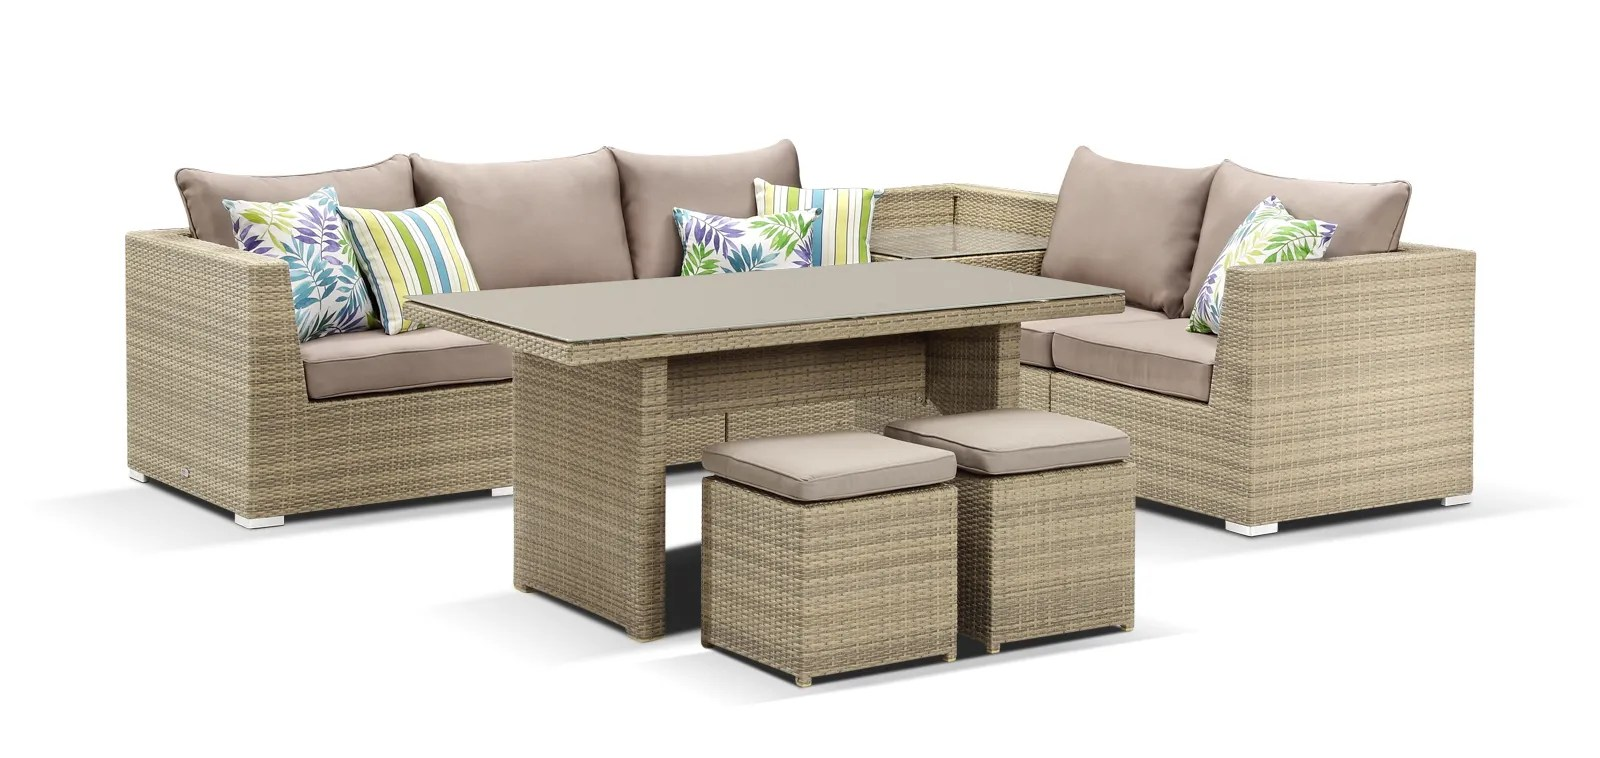 Dining Lounge Outdoor Furniture Evolution Dining Out In Comfort